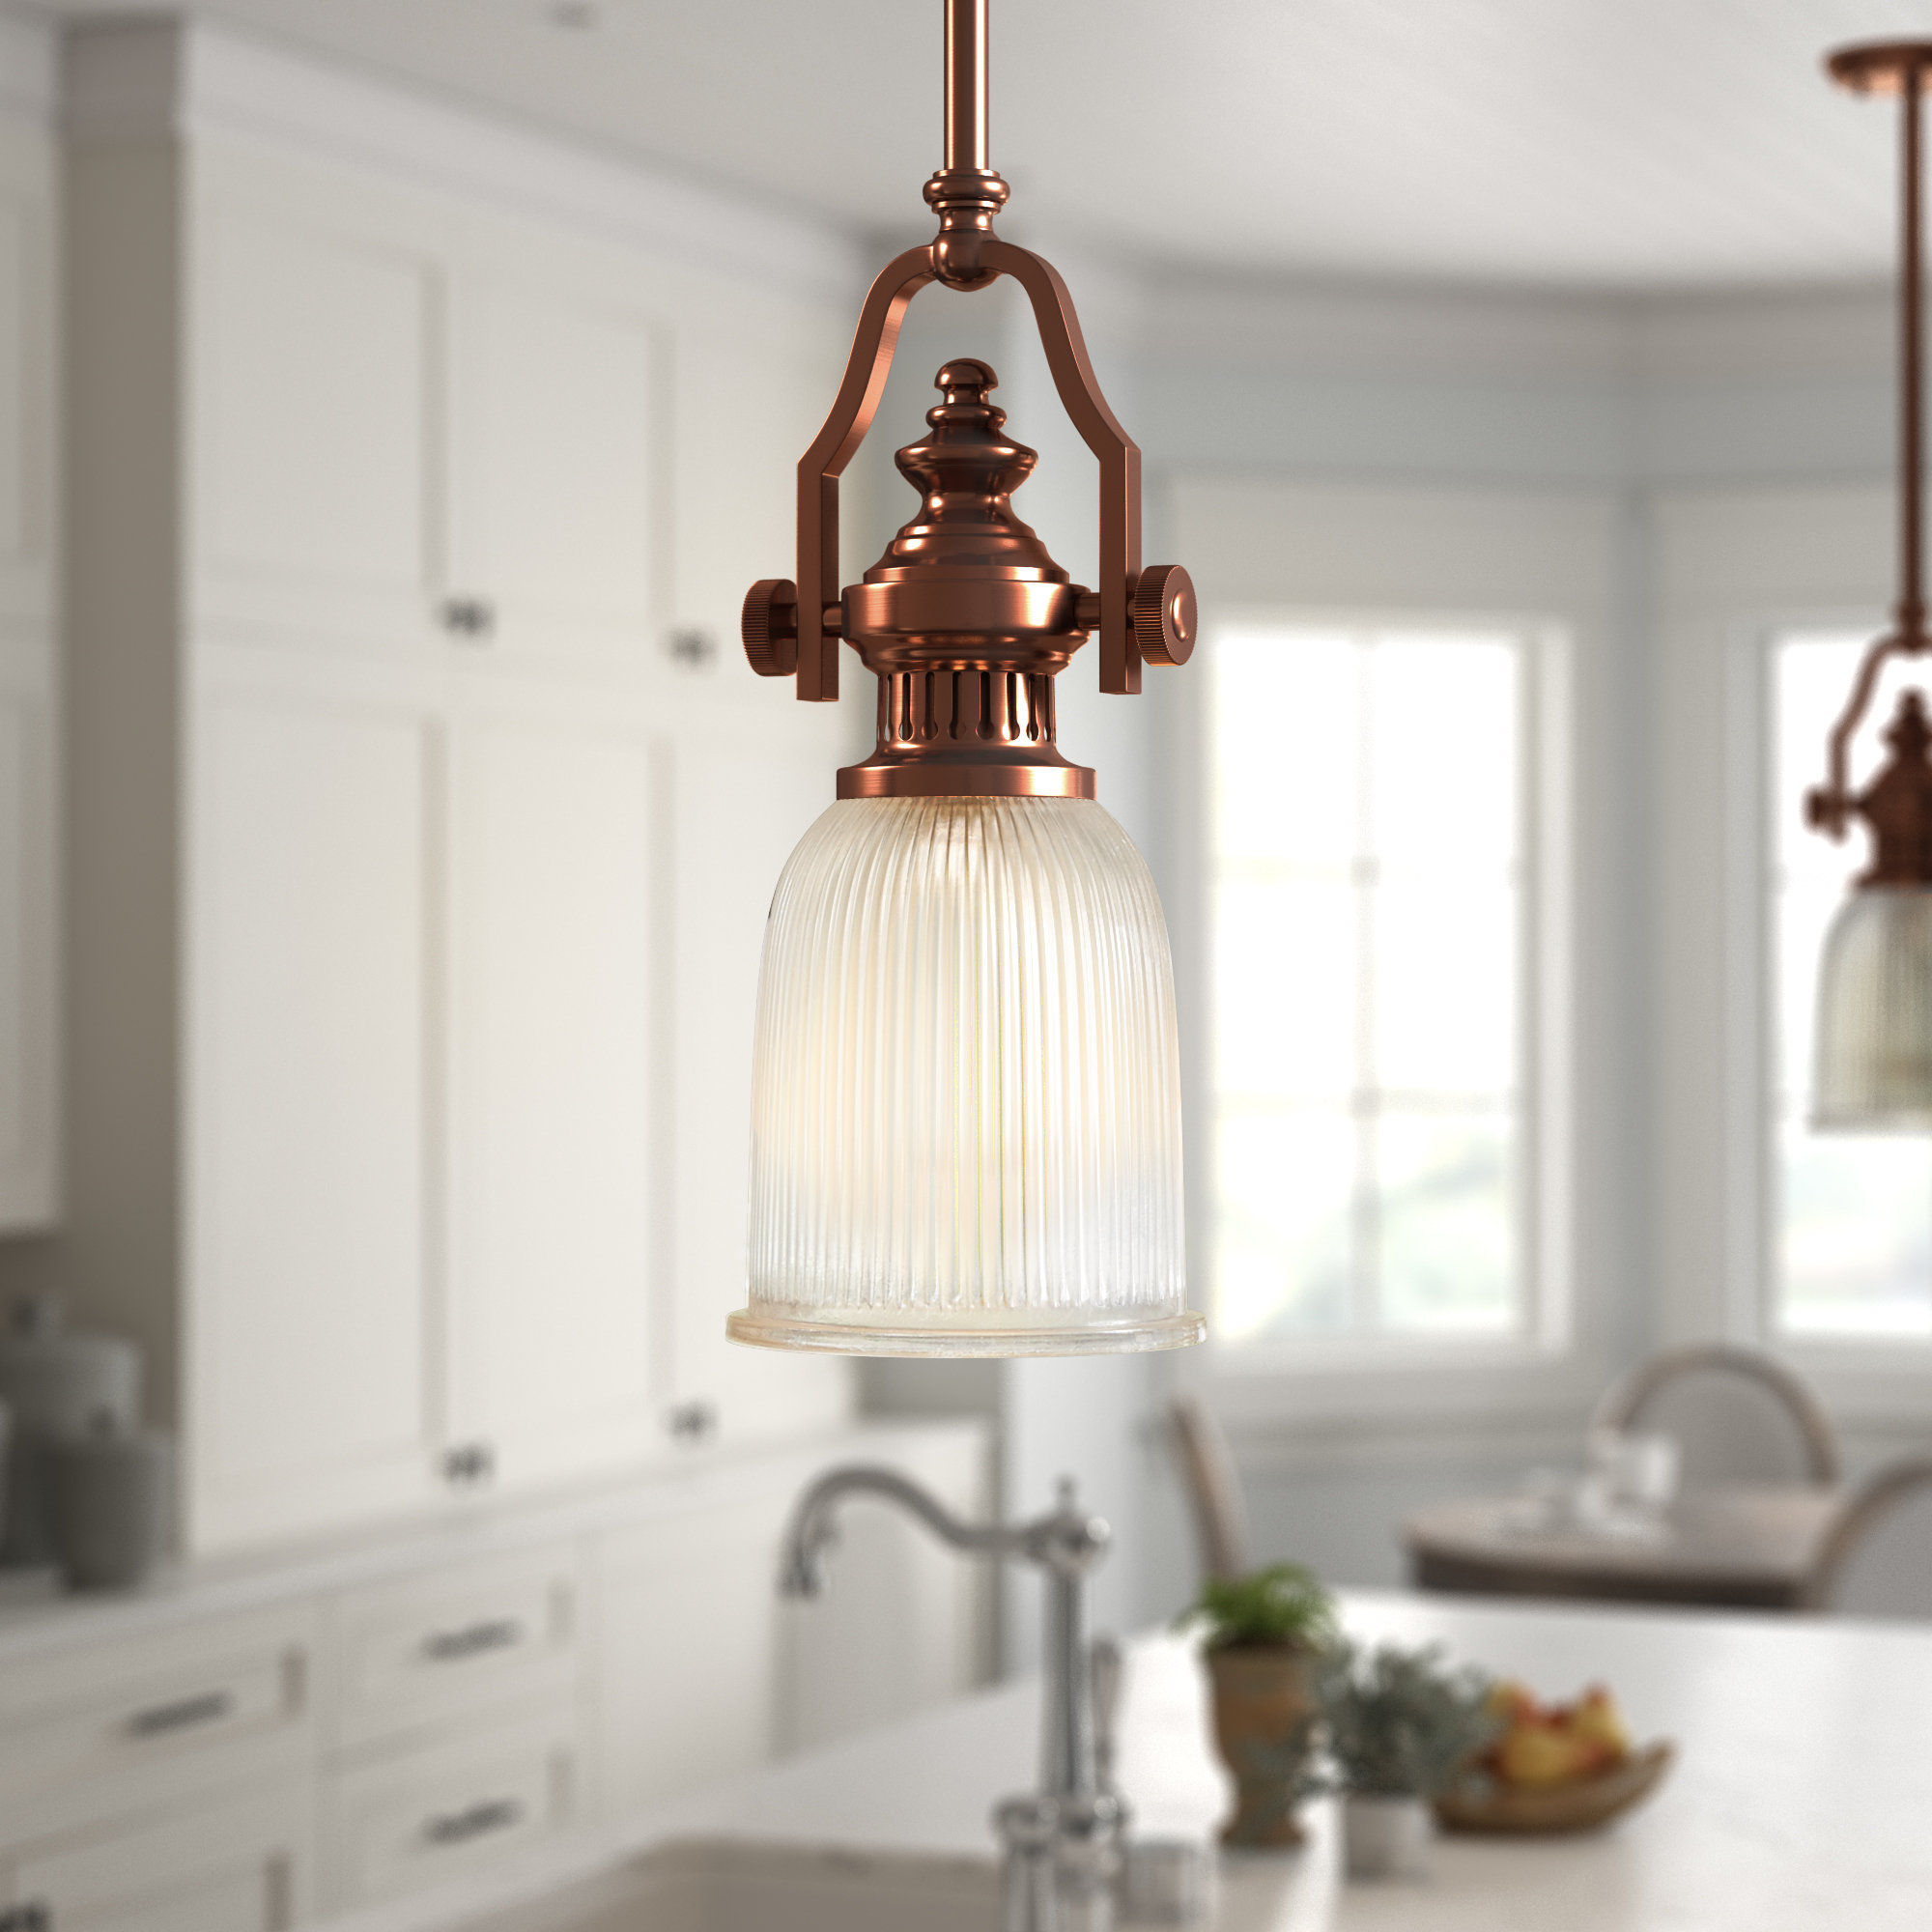 Recent Birch Lane Erico 1 Light Single Bell Pendant & Reviews Pertaining To Goldie 1 Light Single Bell Pendants (View 16 of 20)